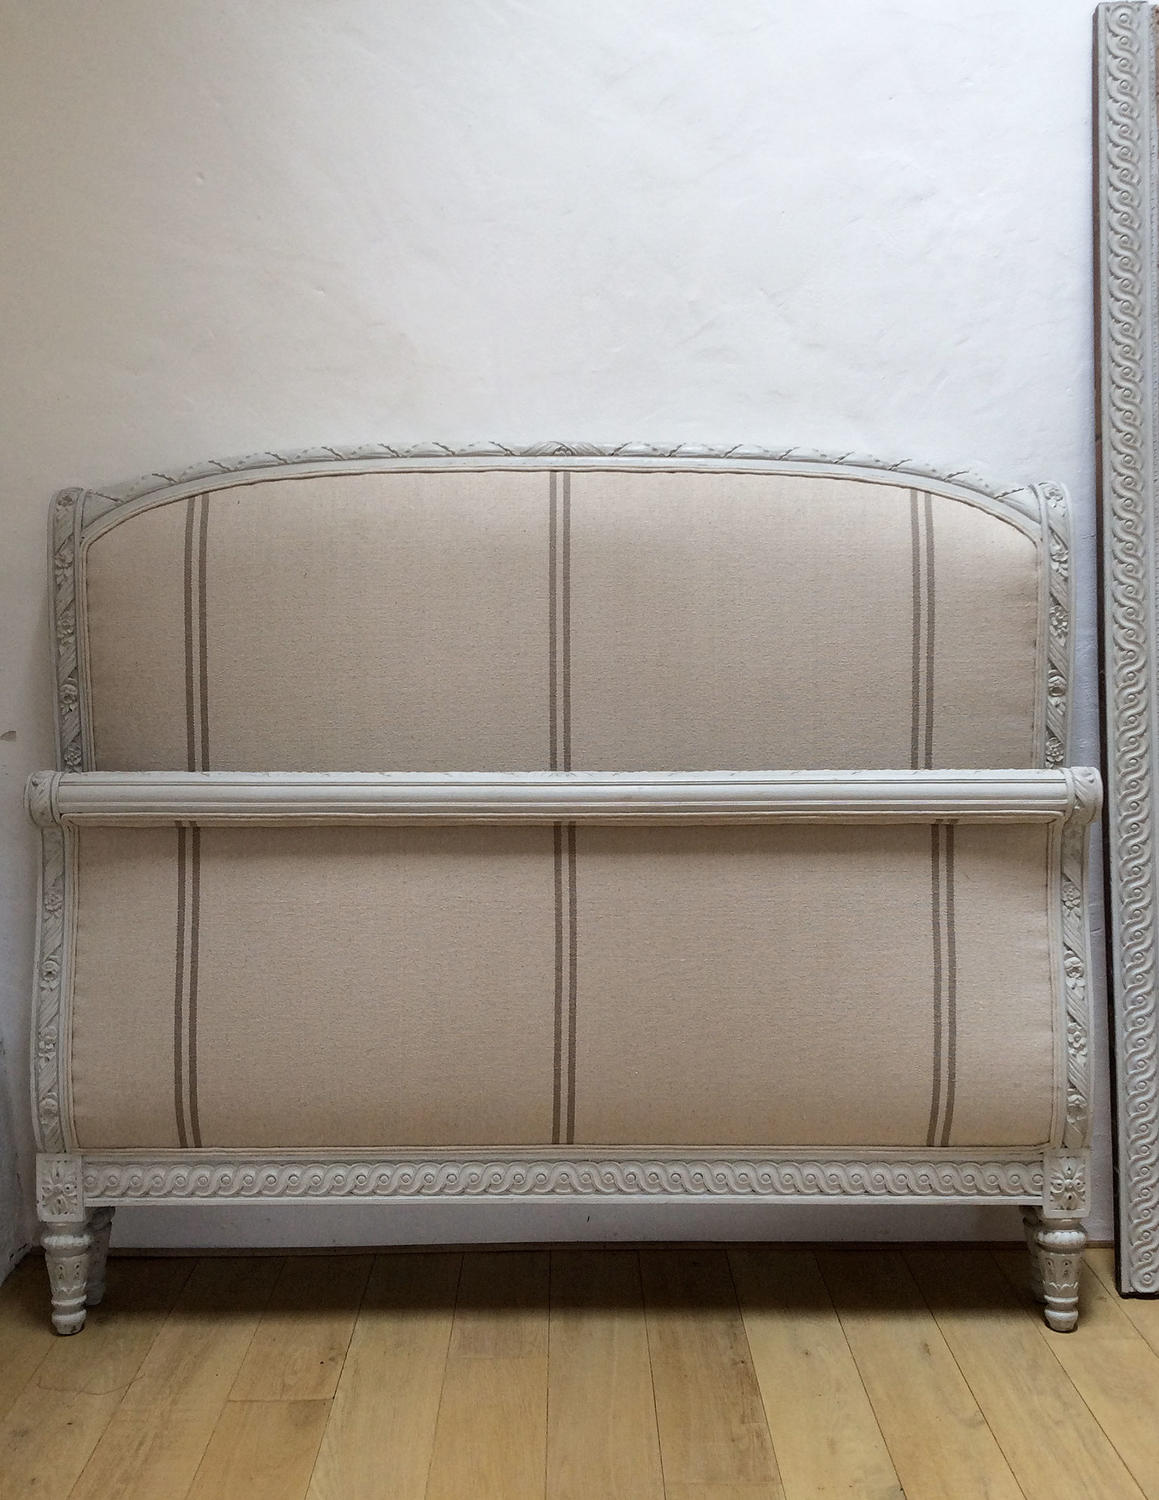 19th Century King size Upholstered Louis XVI Lit Bateau